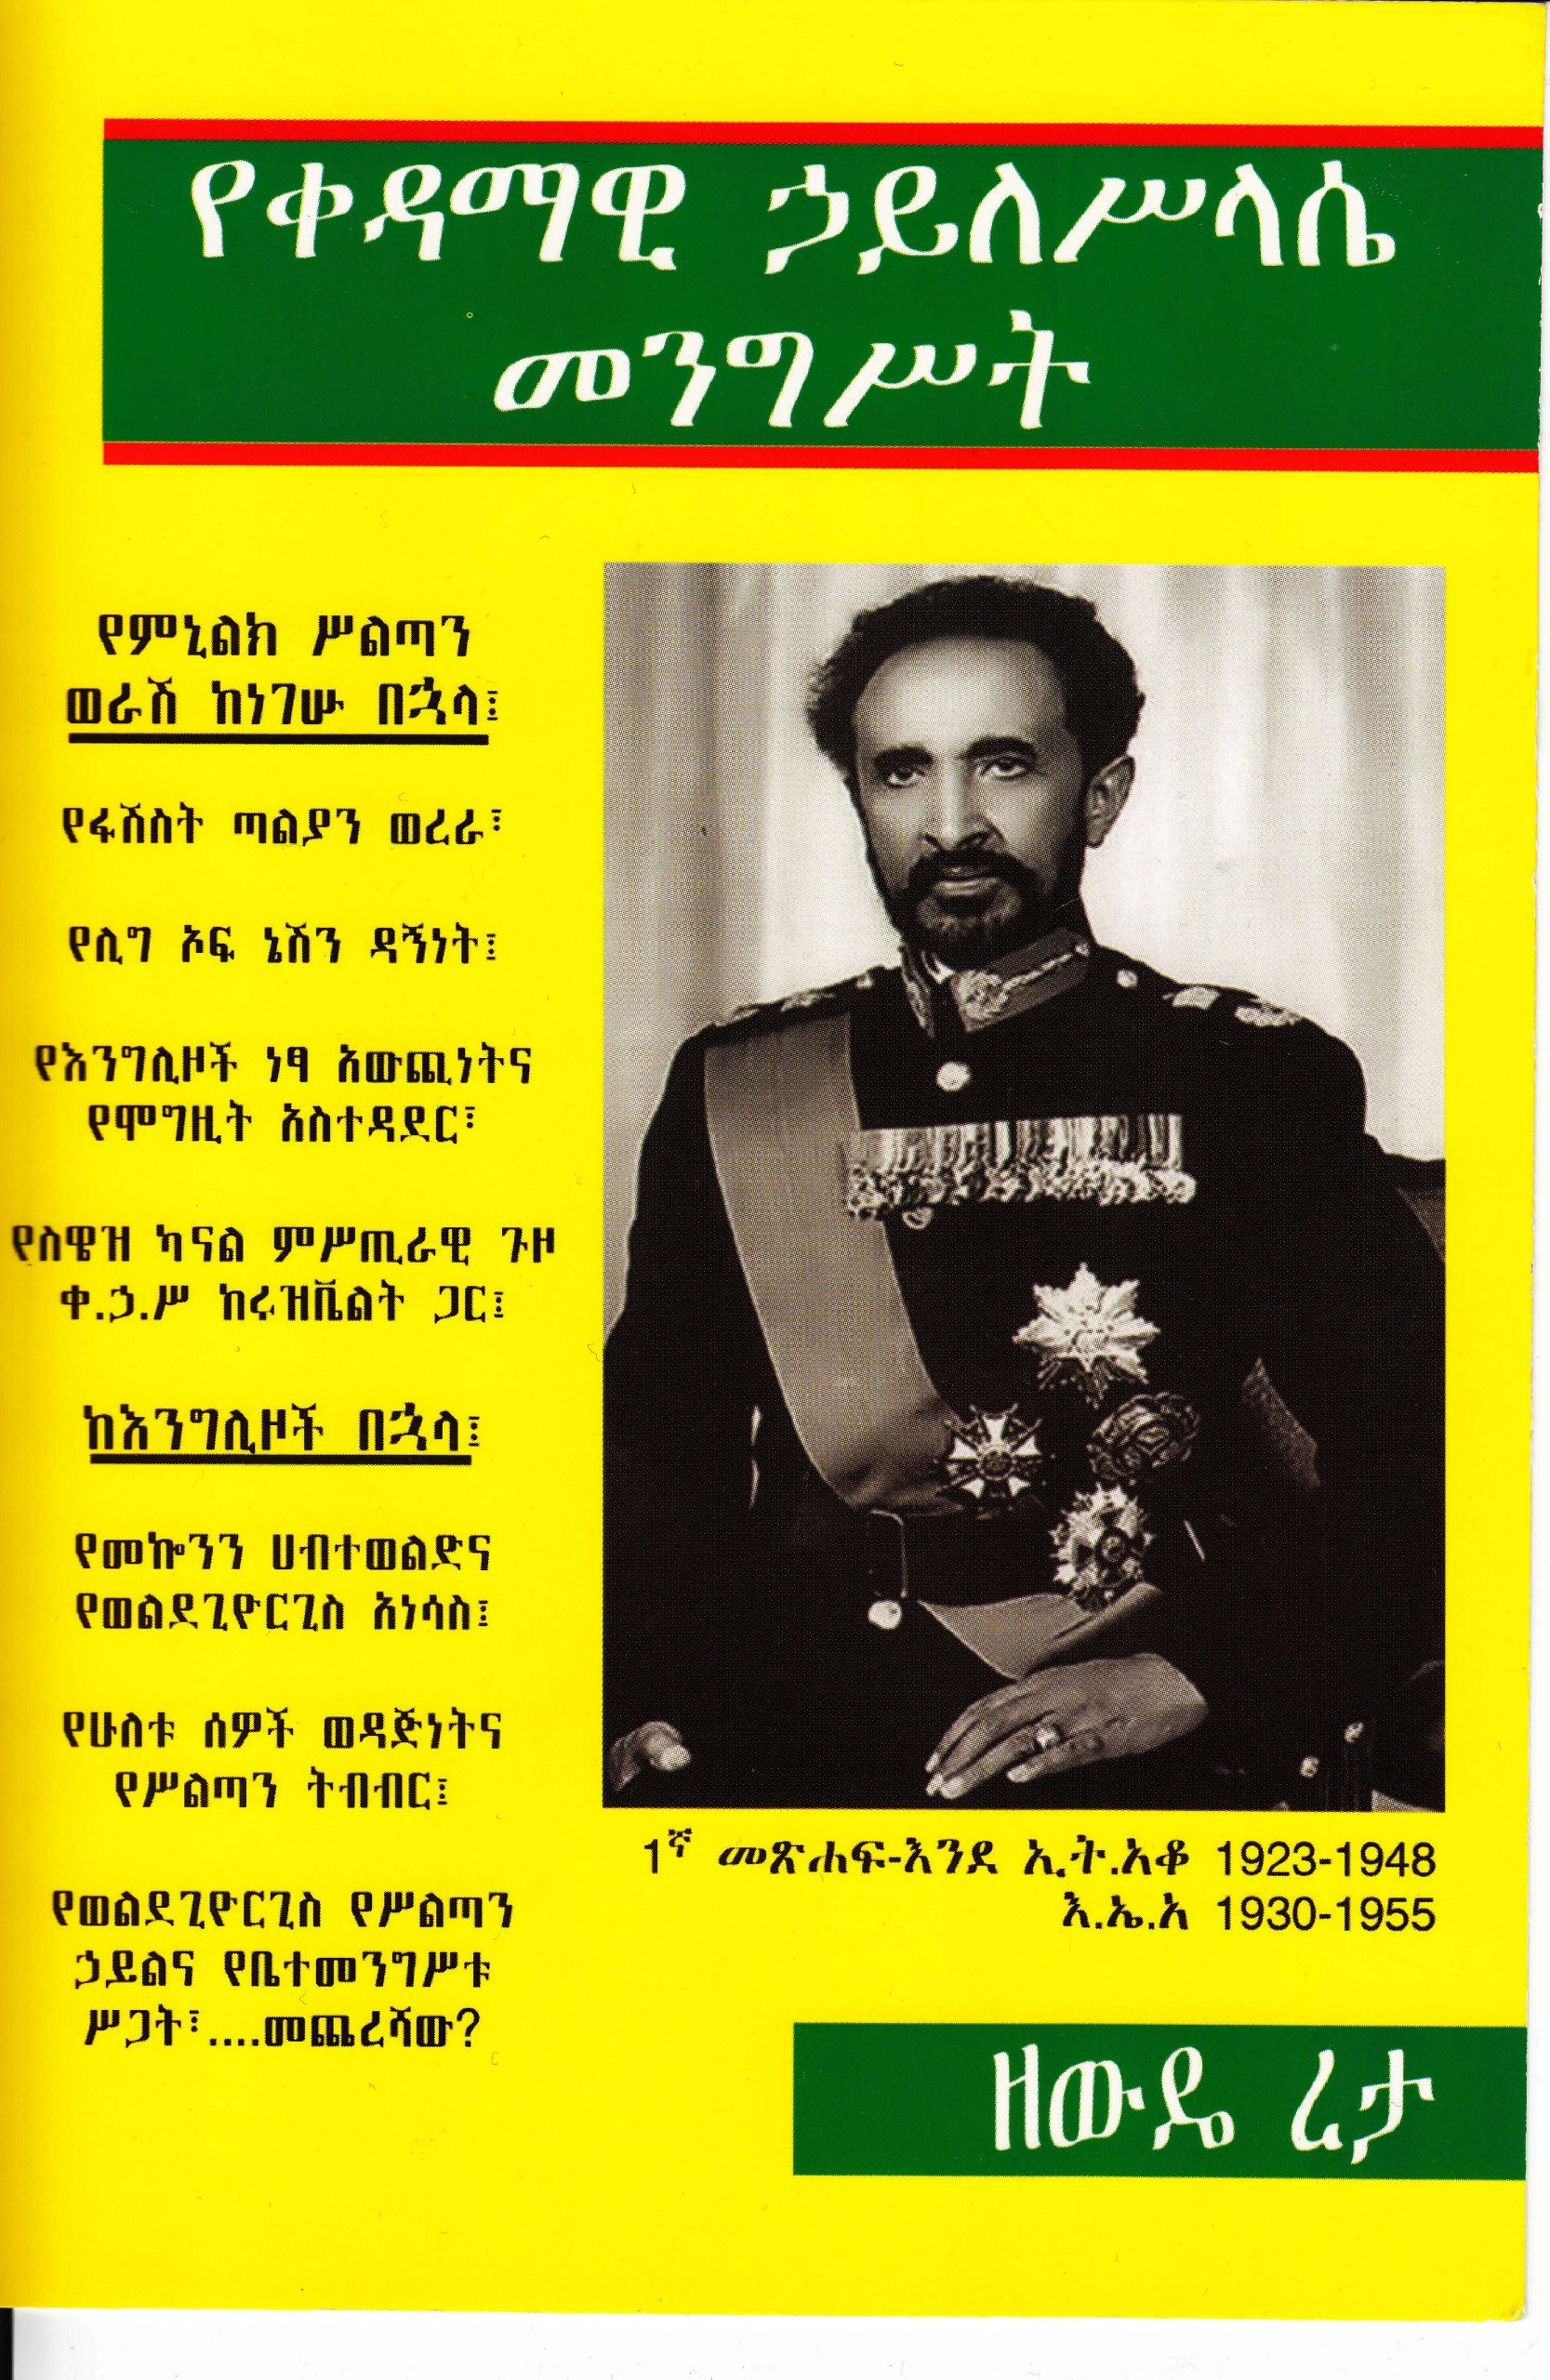 The Government of Emperor Haile Selassie I (1930-1955) (Amharic